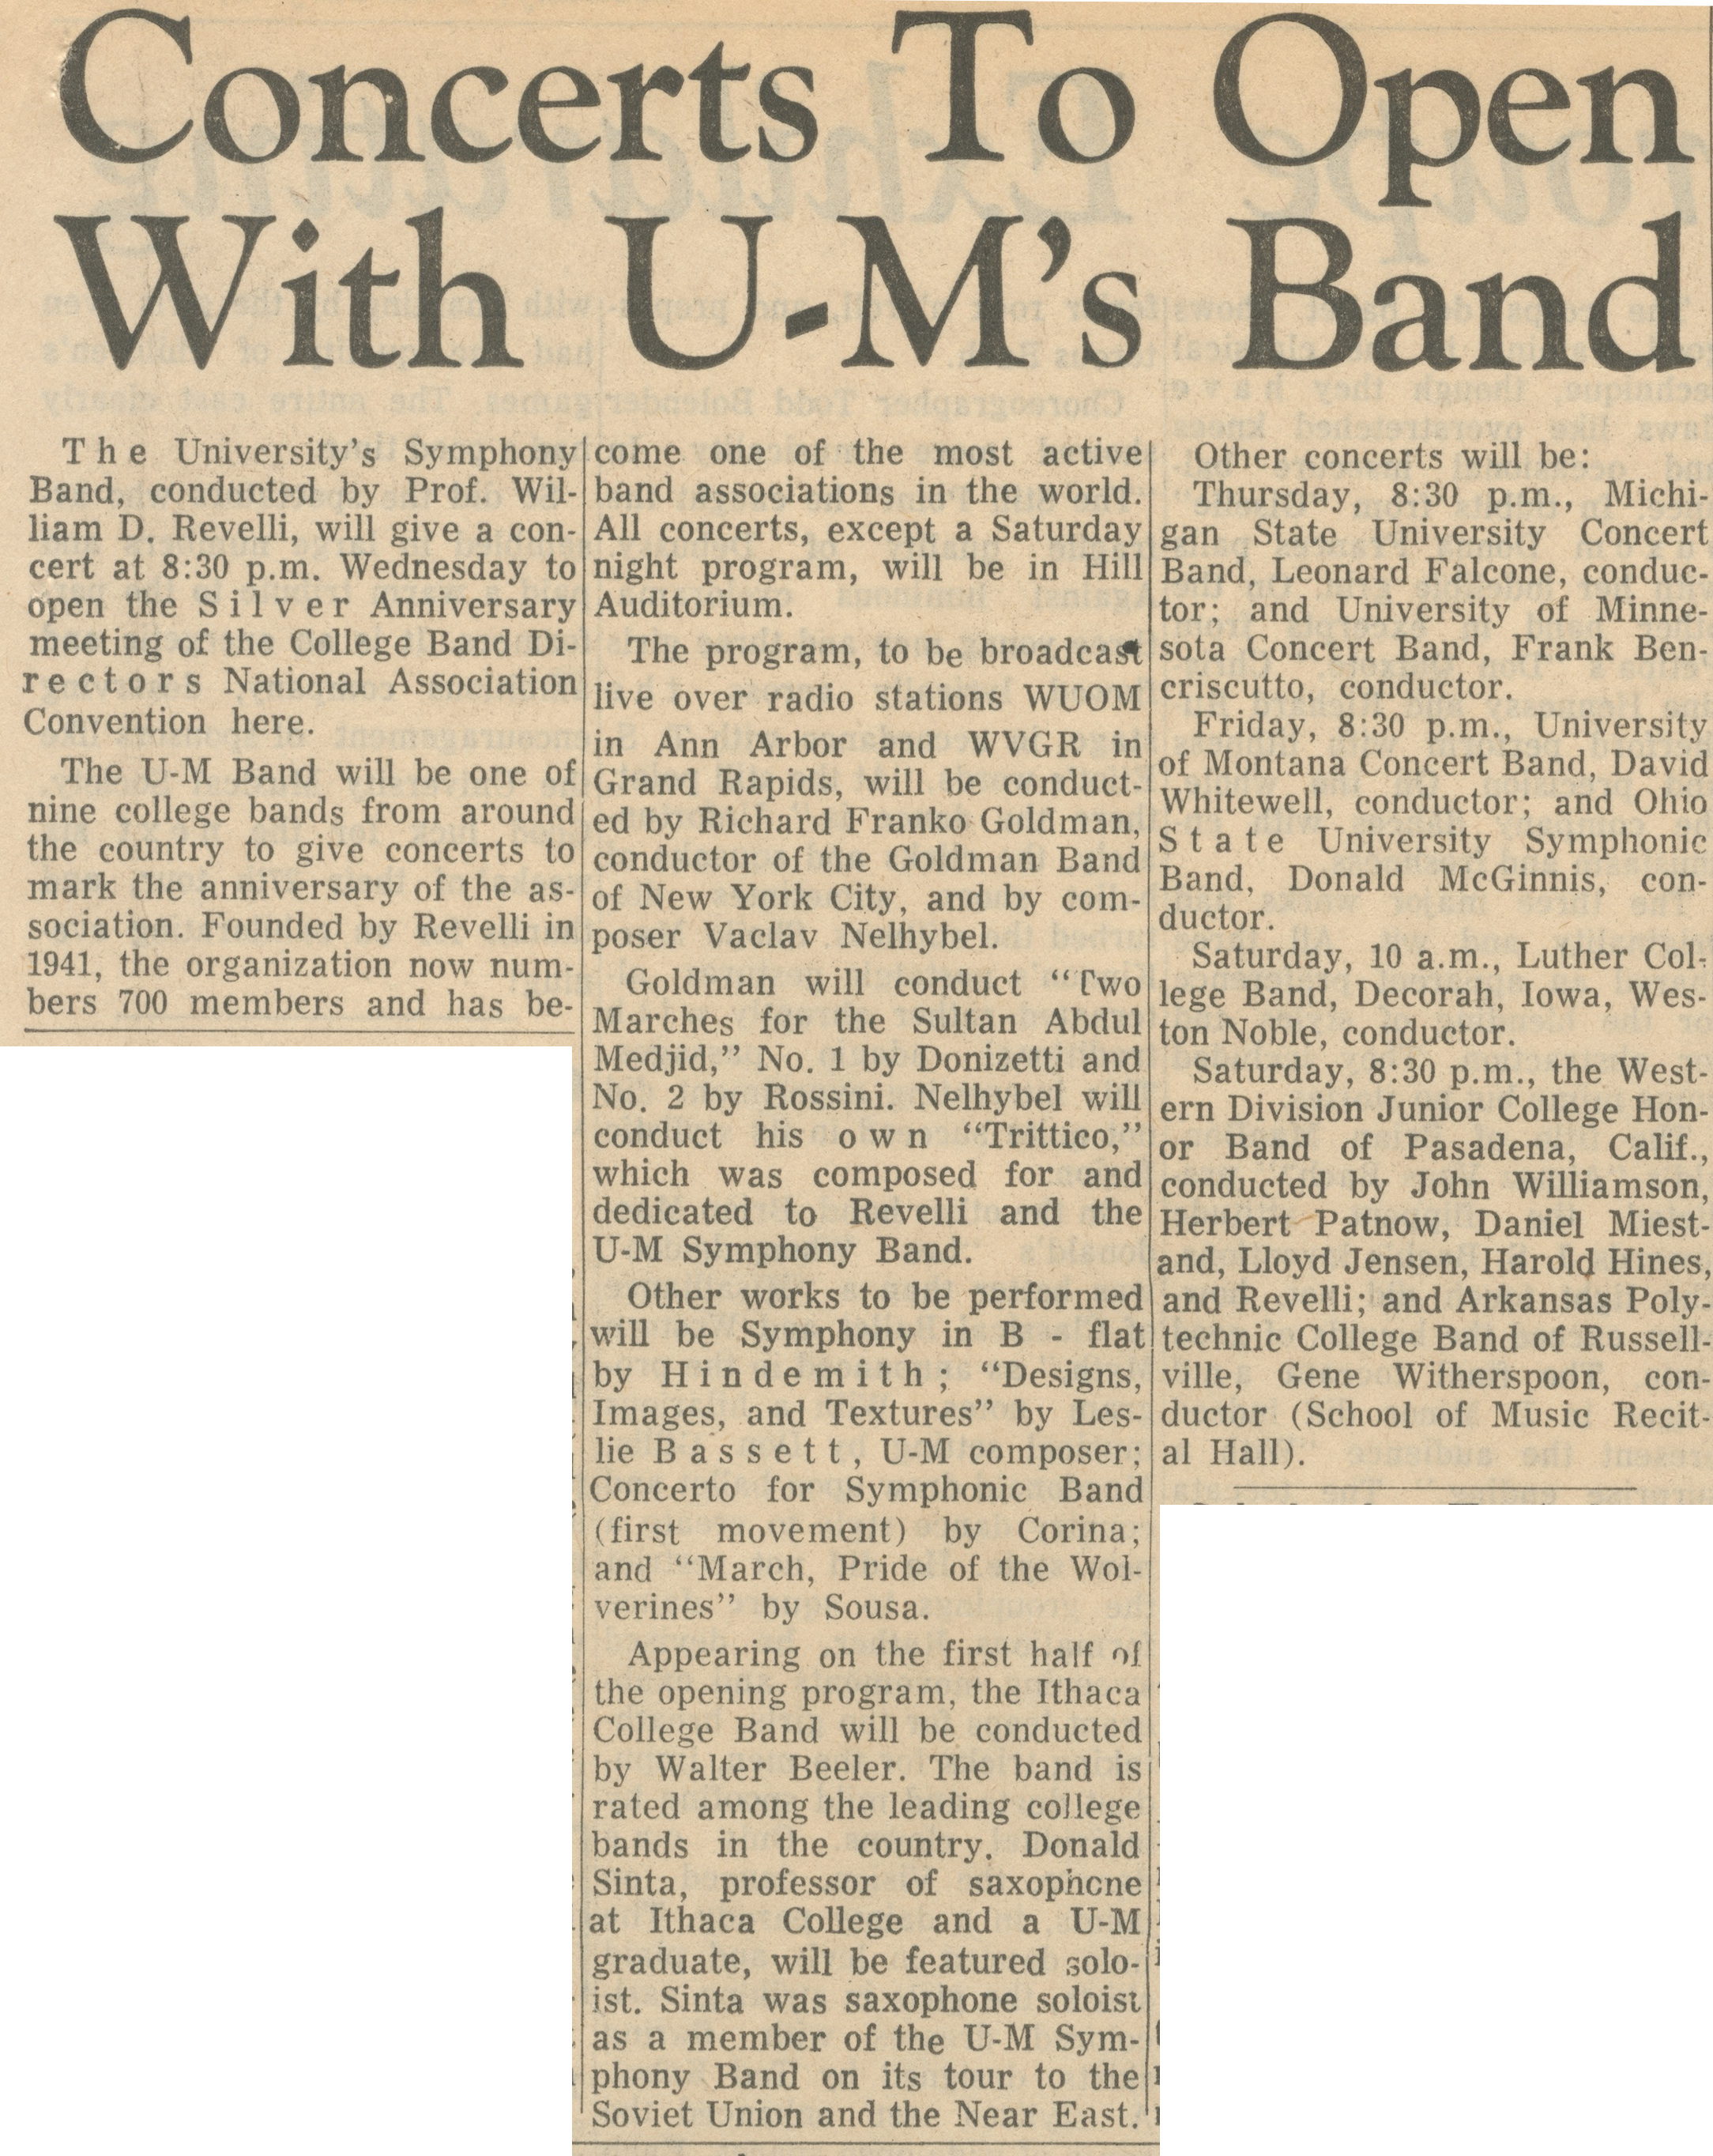 Concerts To Open With U-M's Band image